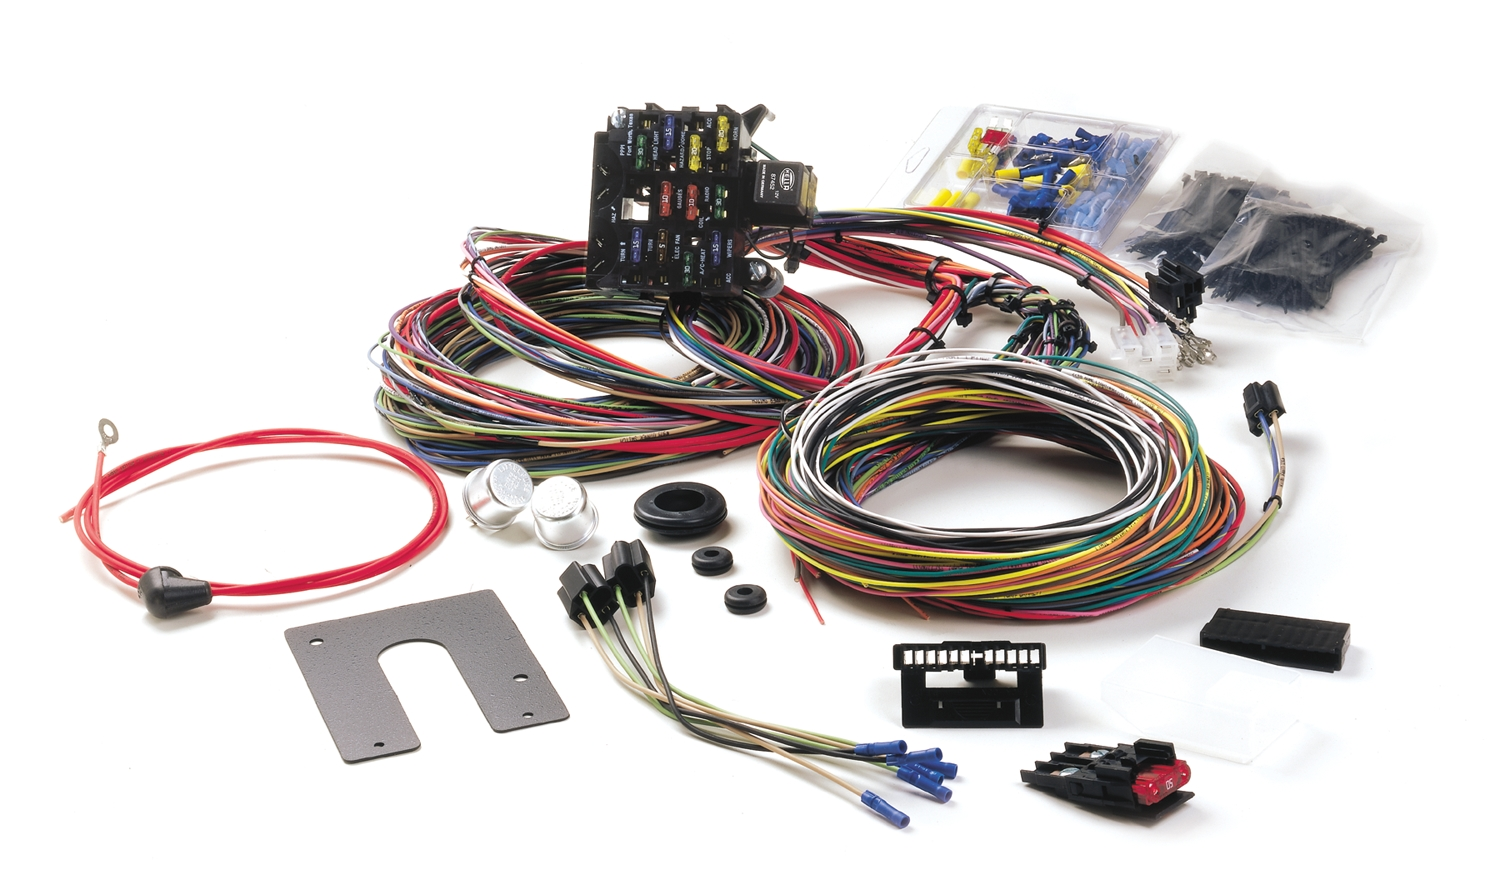 Painless Performance Wiring Diagram Water Pump Diy Enthusiasts 1978 Trans Am Harness Installation In 39 Ford Hotrod Hotline Rh Hotrodhotline Com Starter Fuse